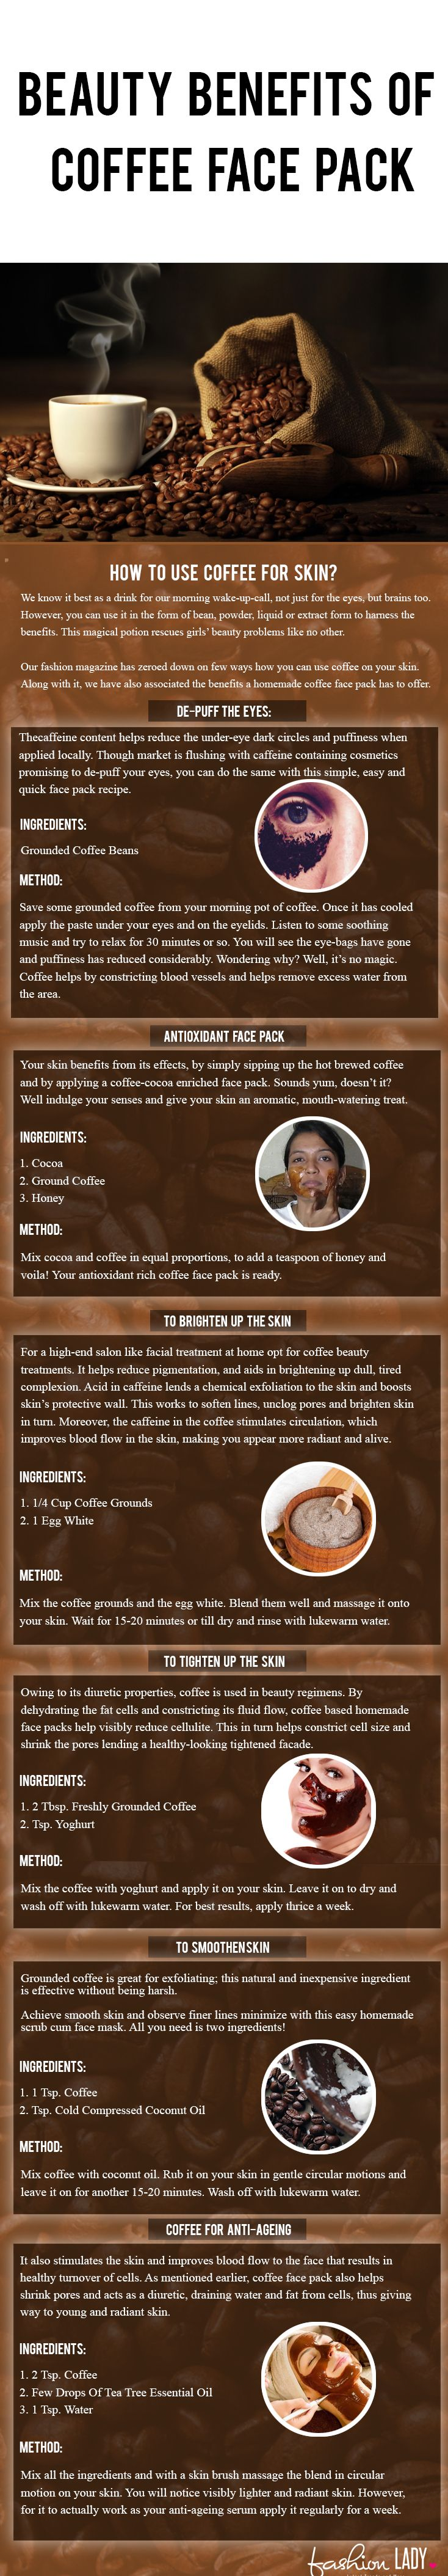 Beauty Benefits Of Coffee Face Pack